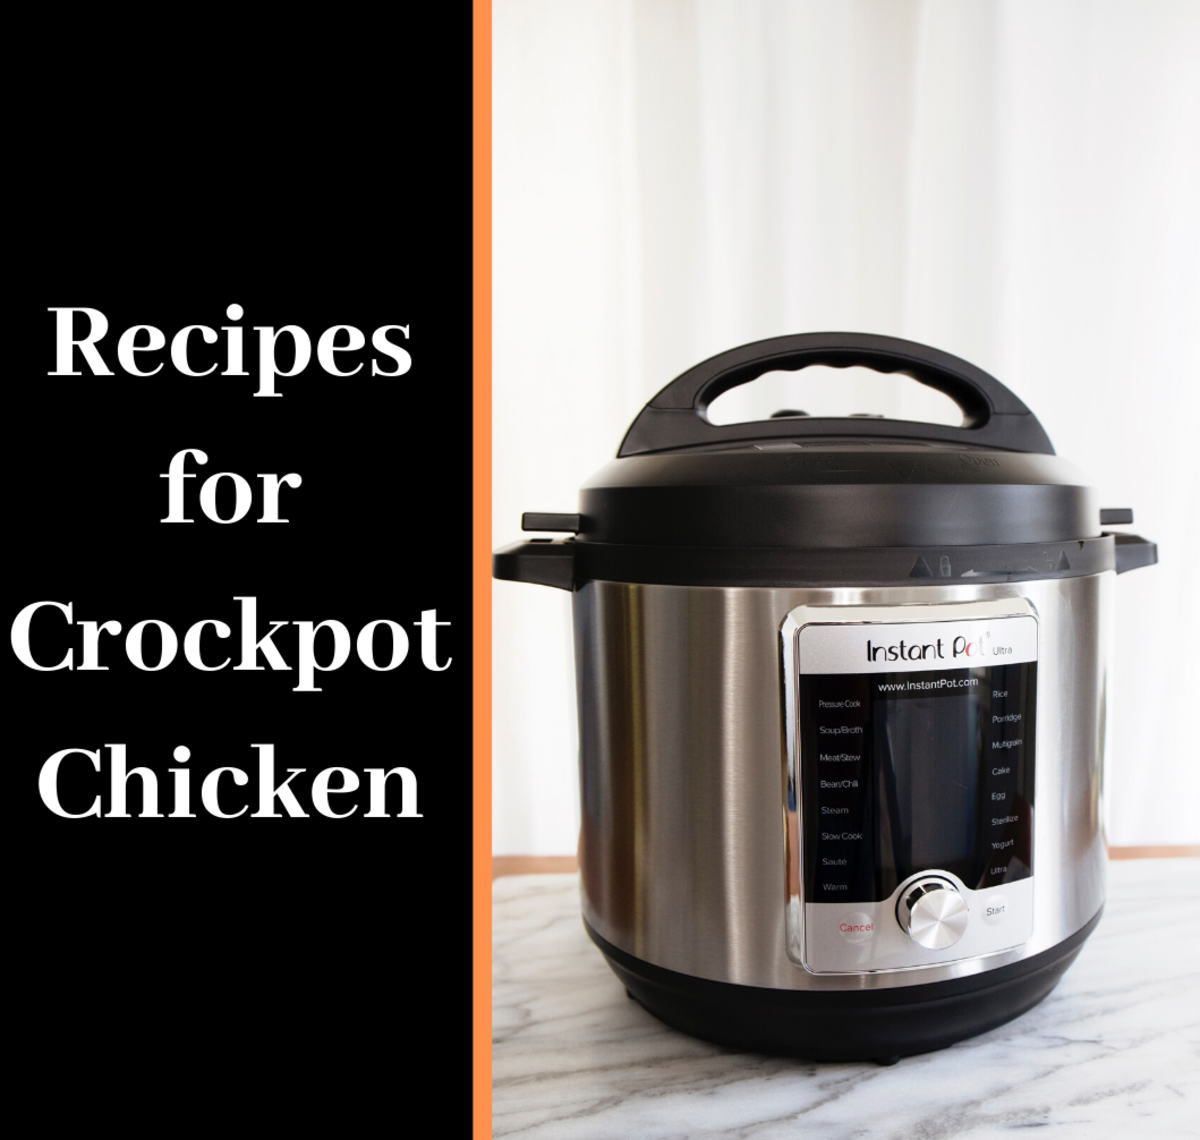 Crockpots are a versatile tool. These great recipes demonstrate how these tools can be used to their full potential.